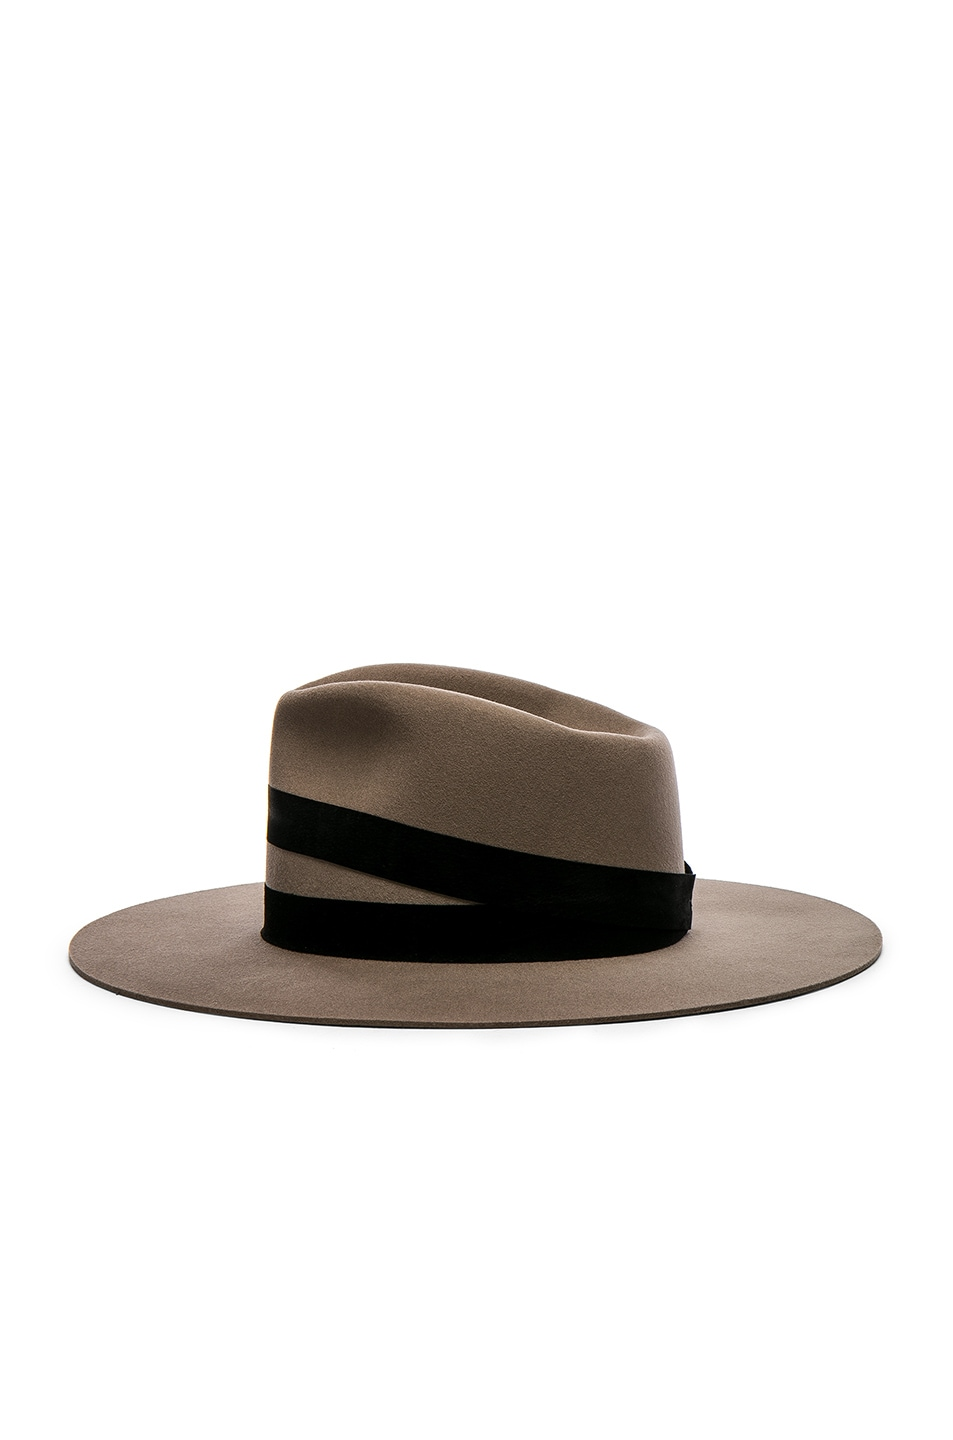 Image 3 of Janessa Leone Un Fedora Hat in Dark Sand